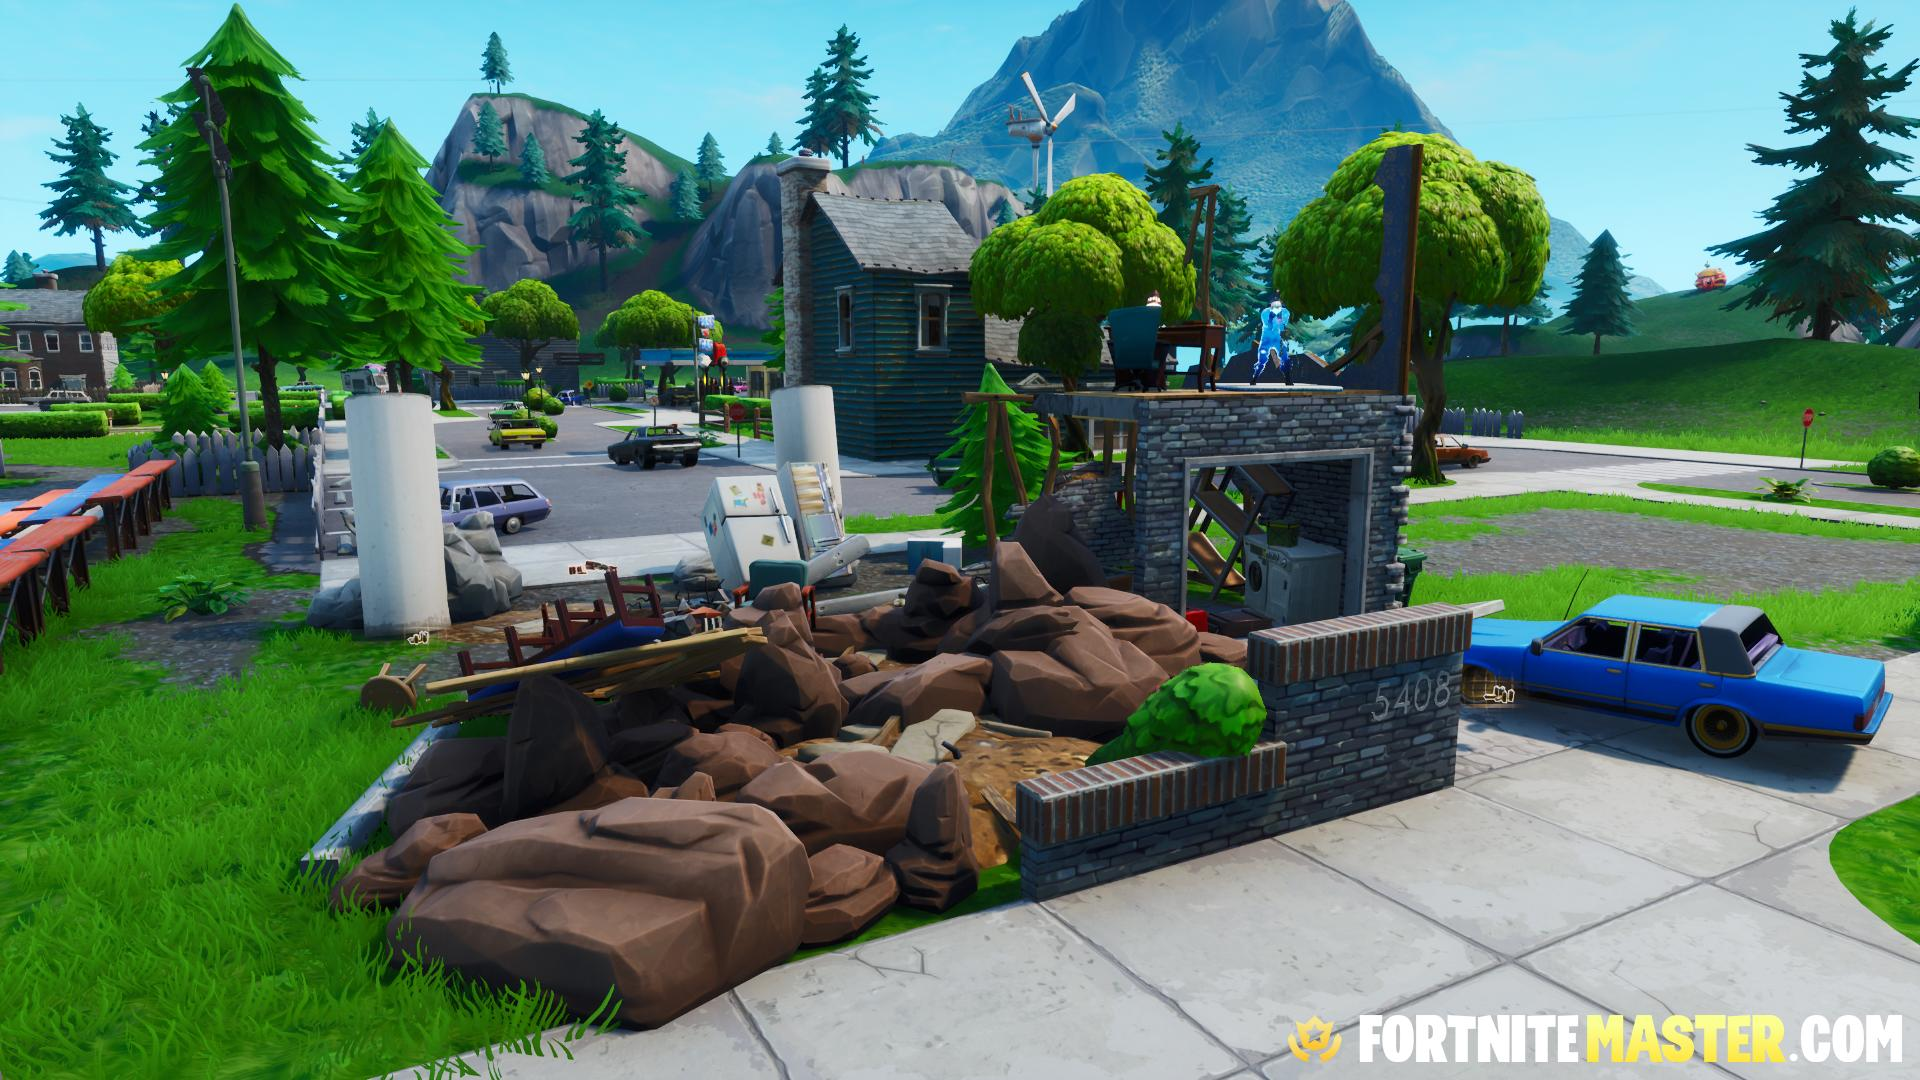 Fortnite neasteptat casa distrusa